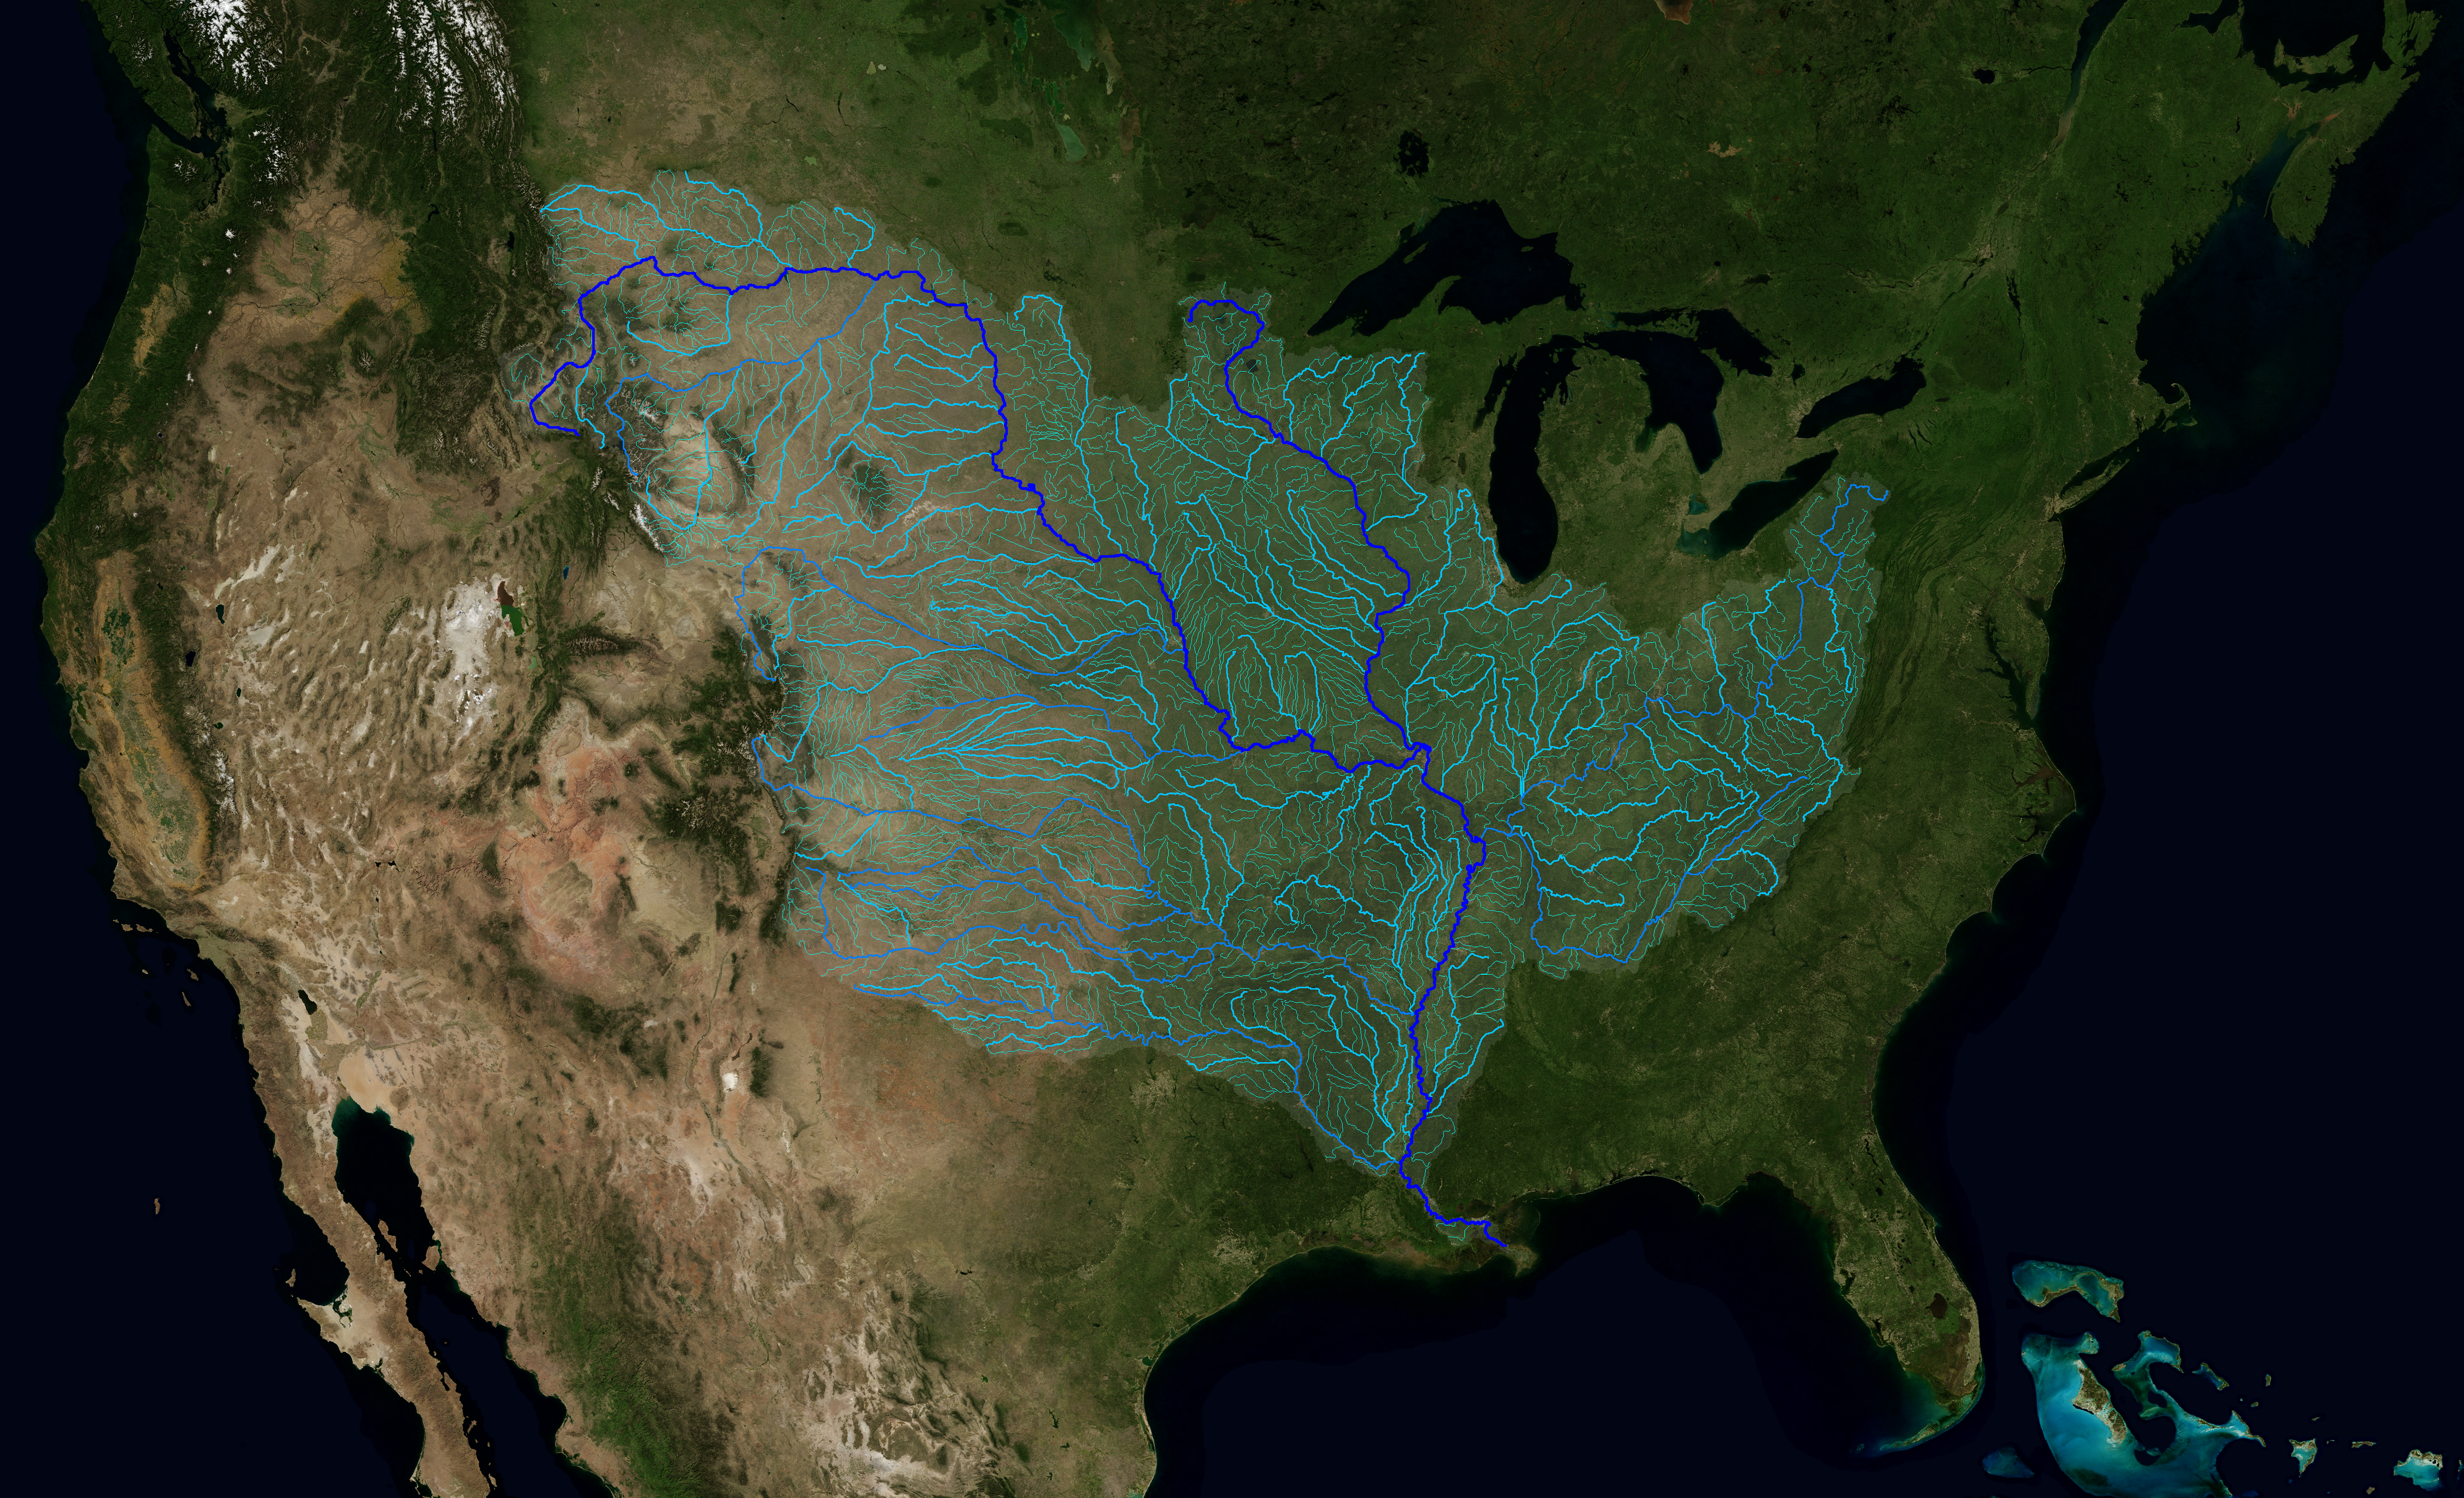 svs the rivers of the mississippi watershed